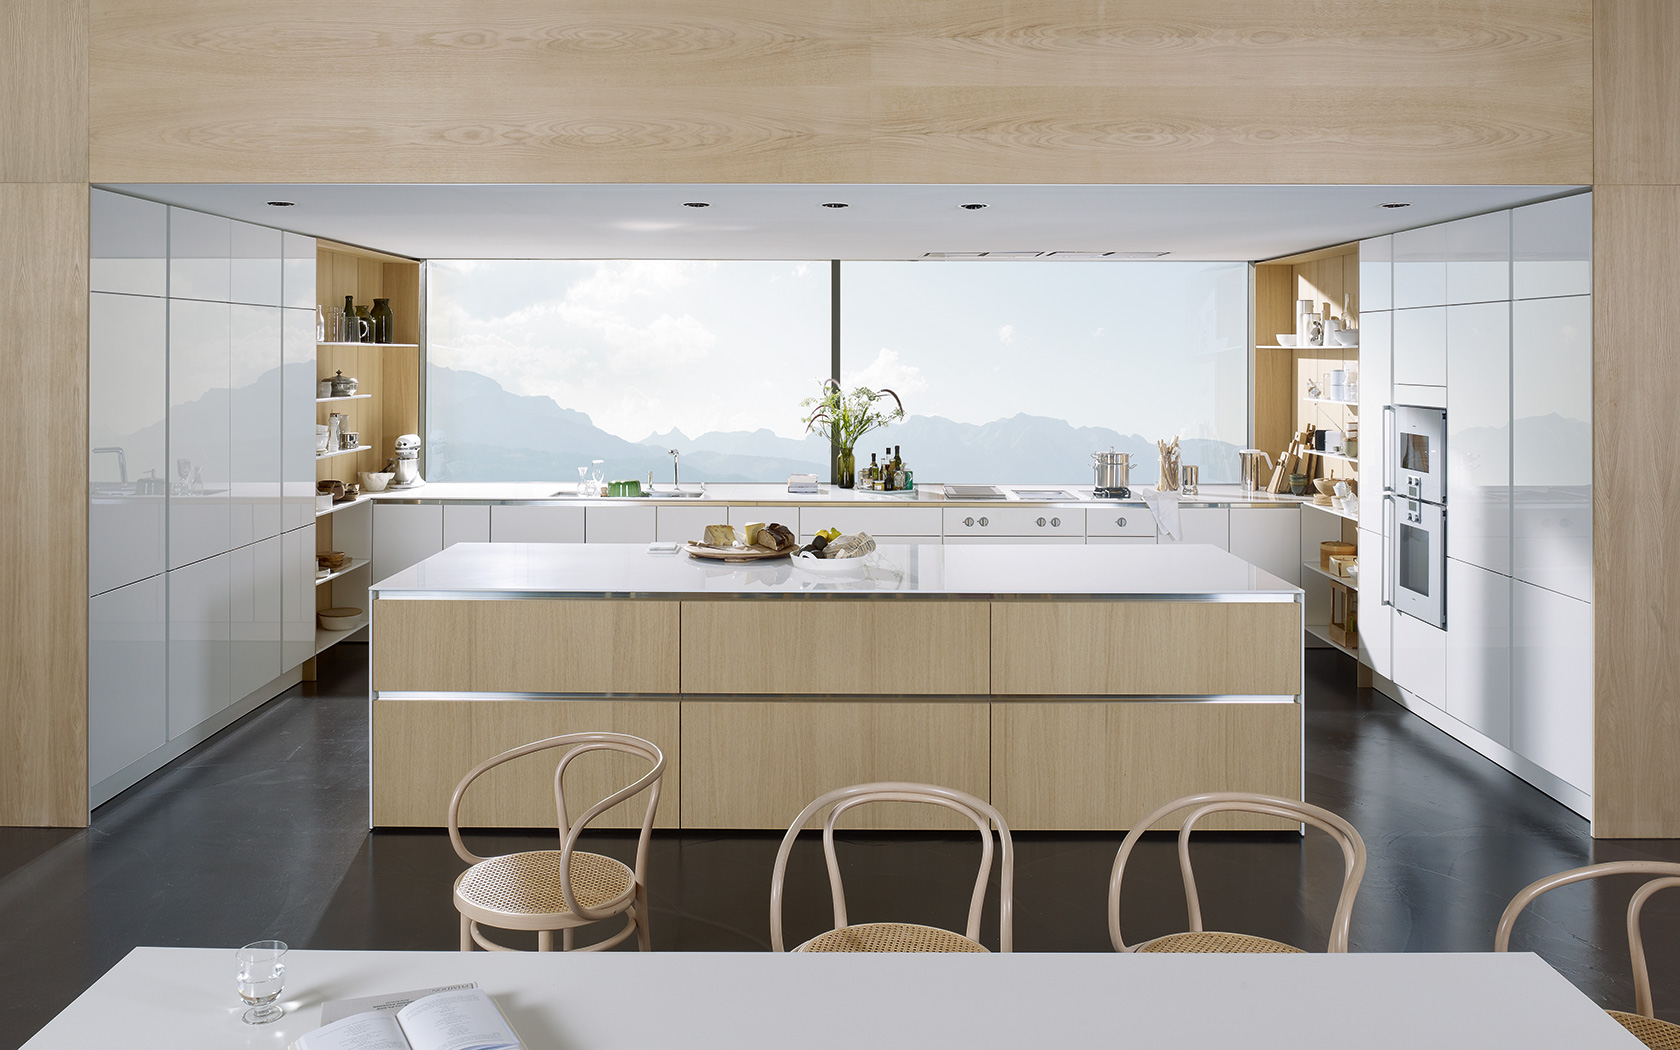 Design is in the Details  Modern Kitchen by SieMaticDesign is in the Details  Modern Kitchen Design   Studio MM Architect. Siematic Kitchen Designs. Home Design Ideas